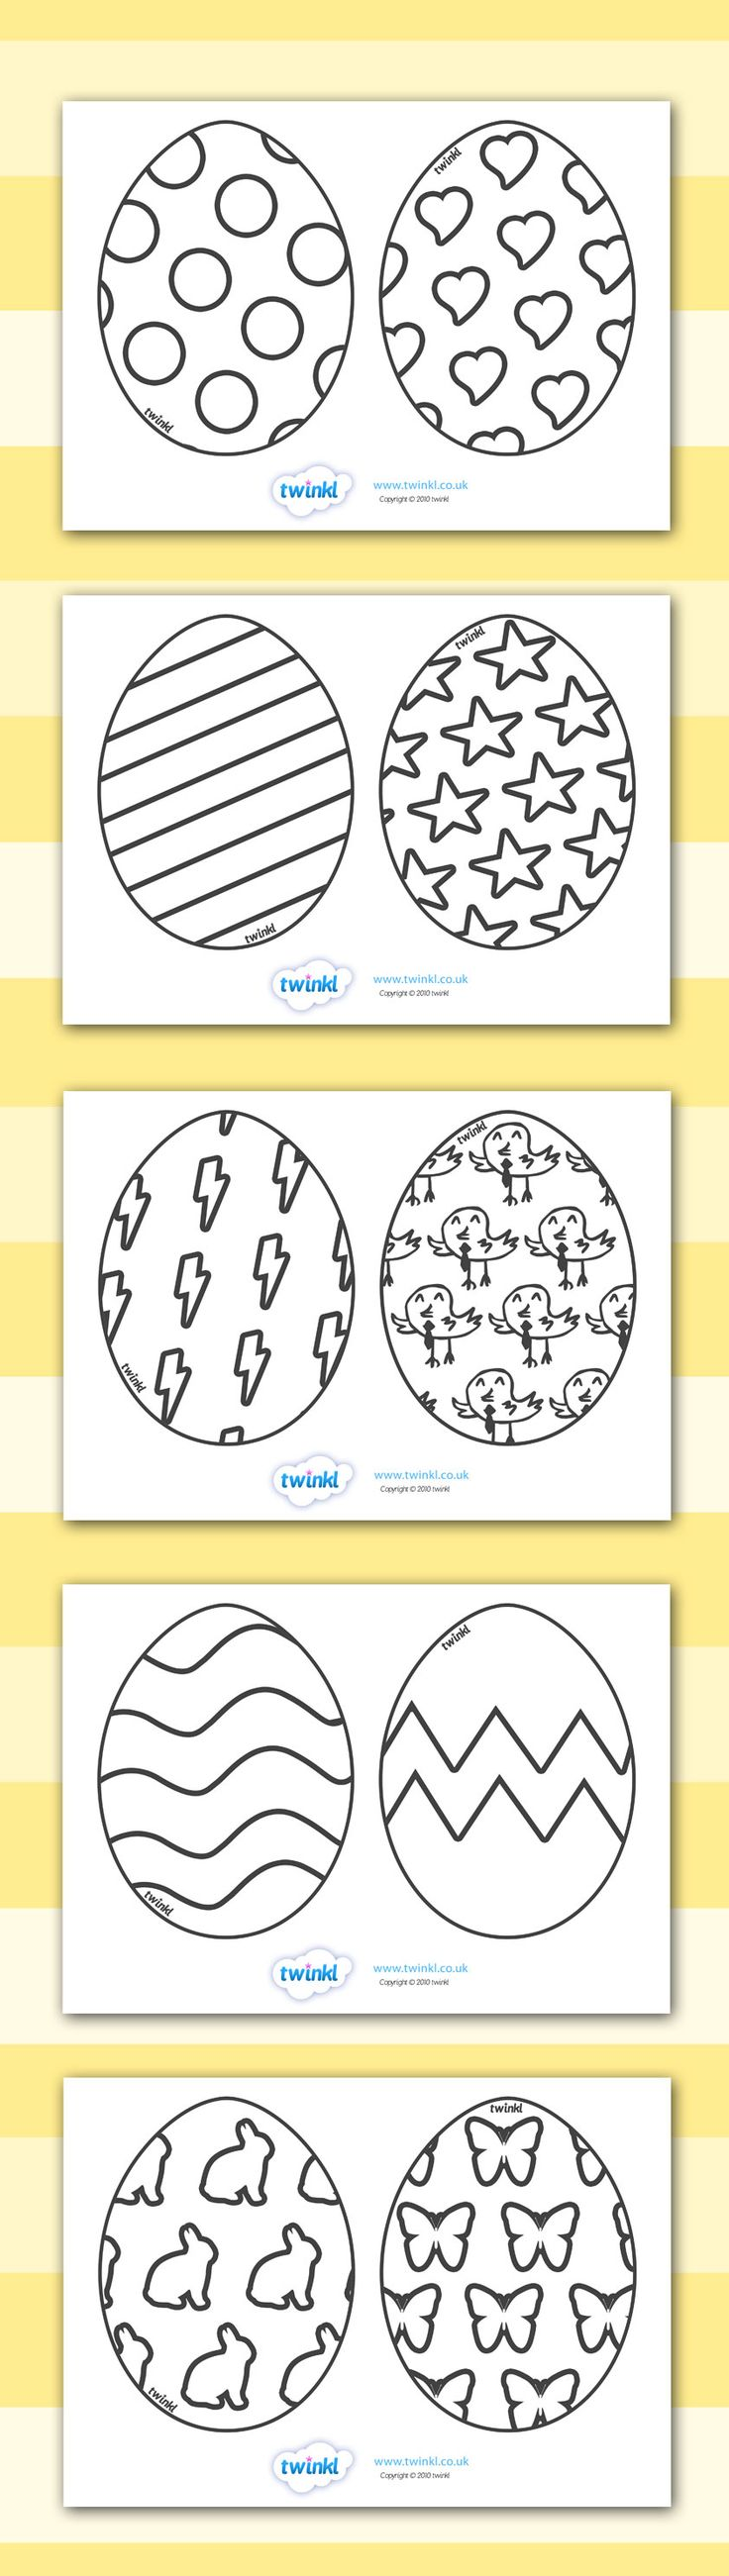 Twinkl Resources >> Easter Egg Templates >> Printable resources for Primary, EYFS, KS1 and SEN.  Thousands of classroom displays and teaching aids! Topics, Easter, Colouring, Easter Eggs